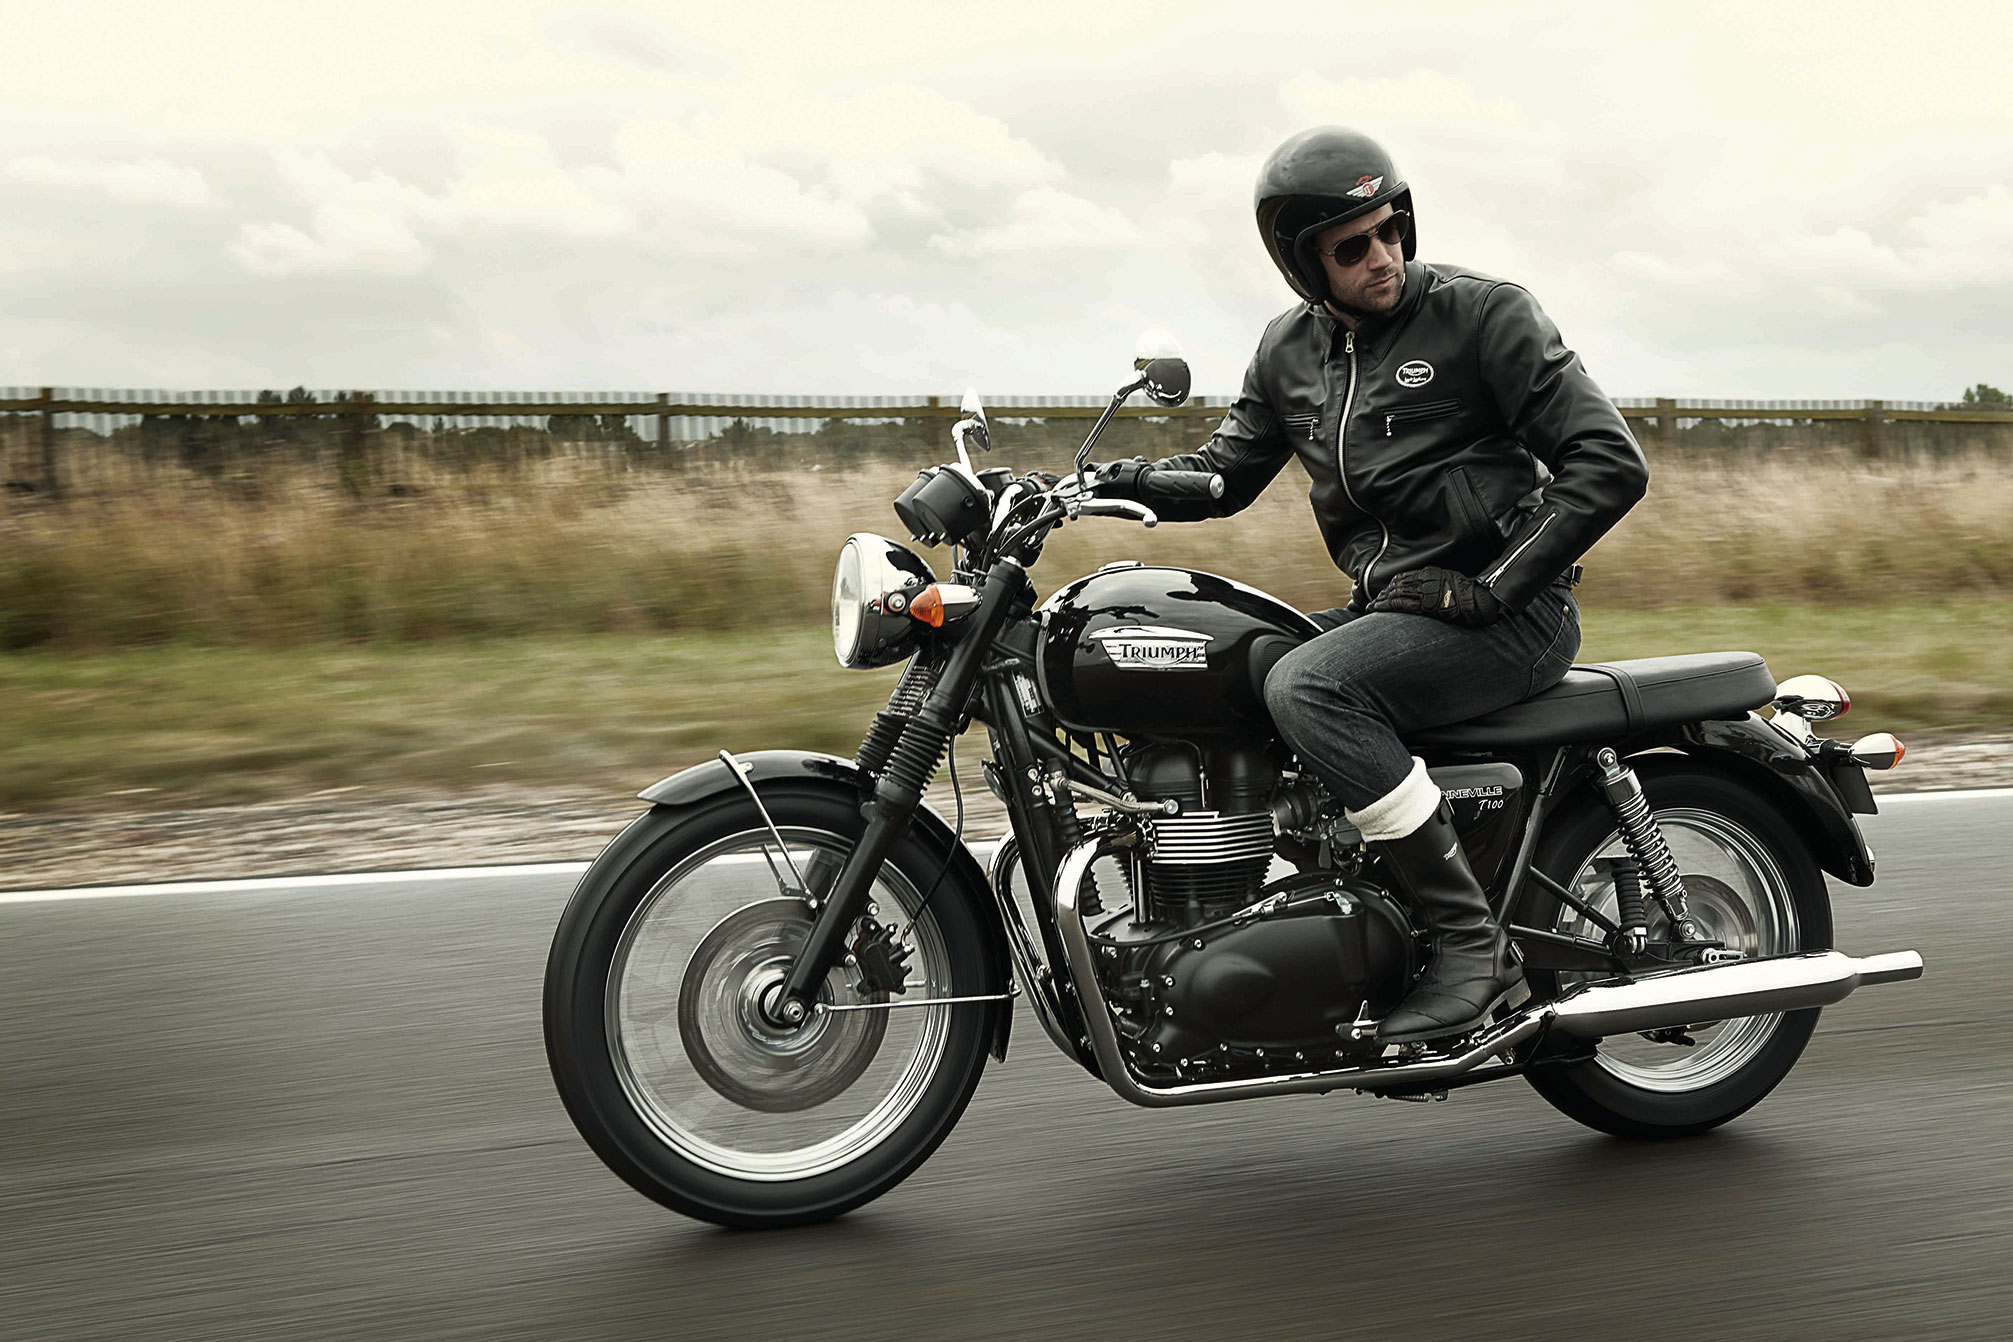 2013 Triumph Bonneville T100 Review